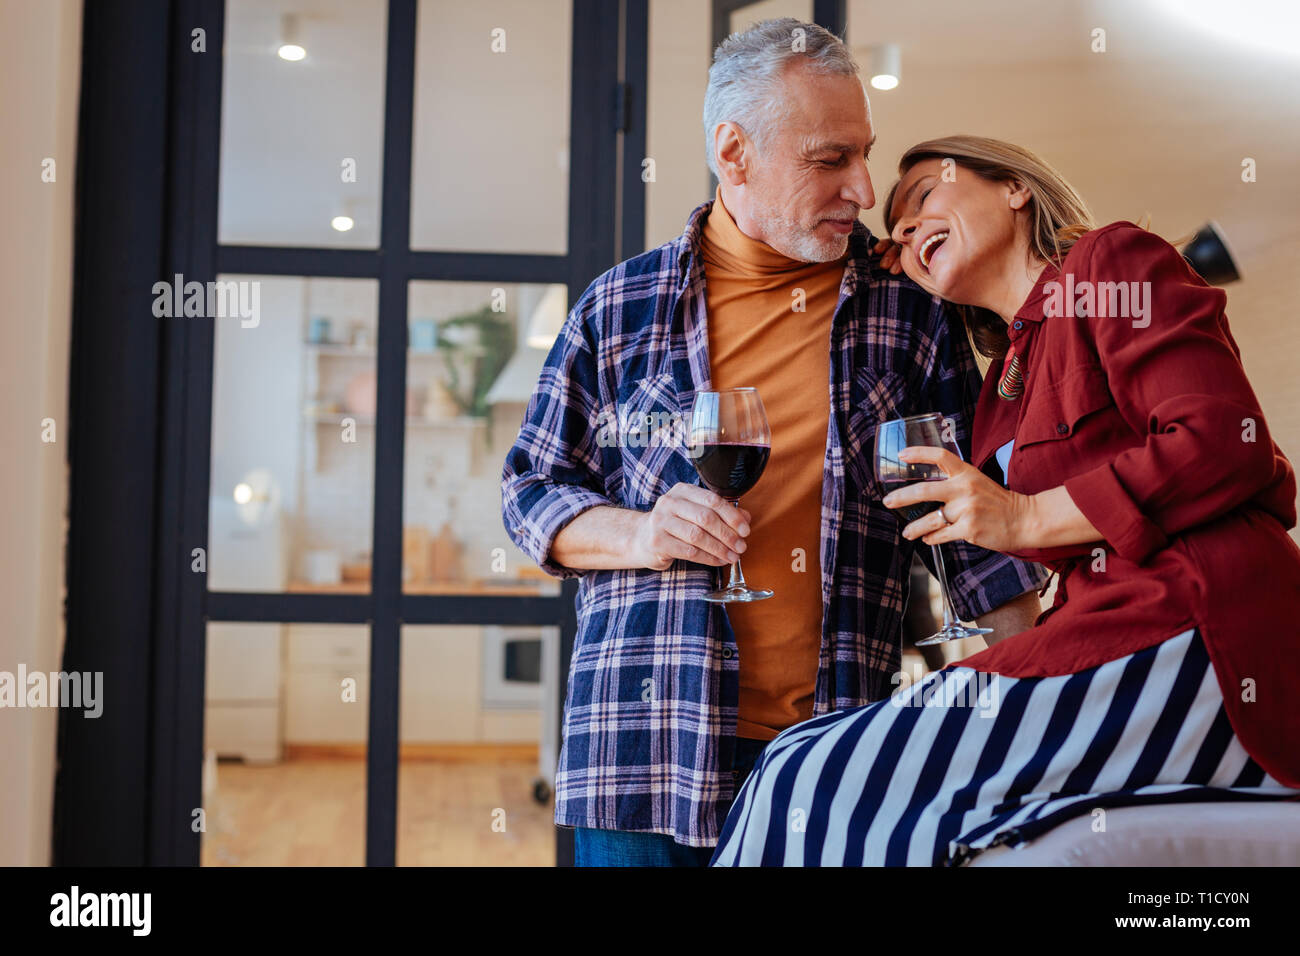 Cheerful laughing wife leaning on shoulder of her husband Stock Photo